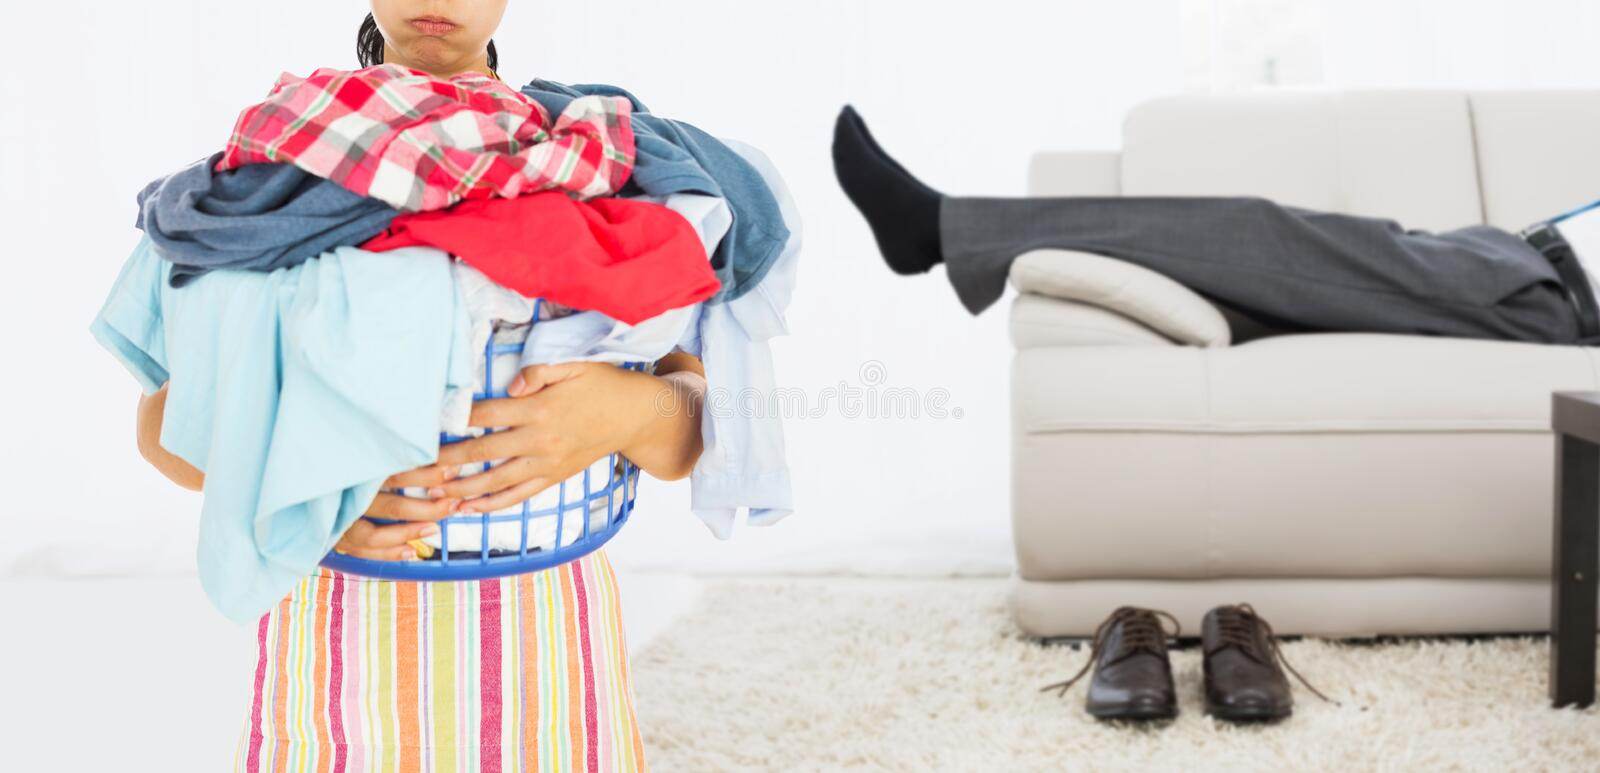 Composite image of tired woman holding full laundry basket royalty free stock images